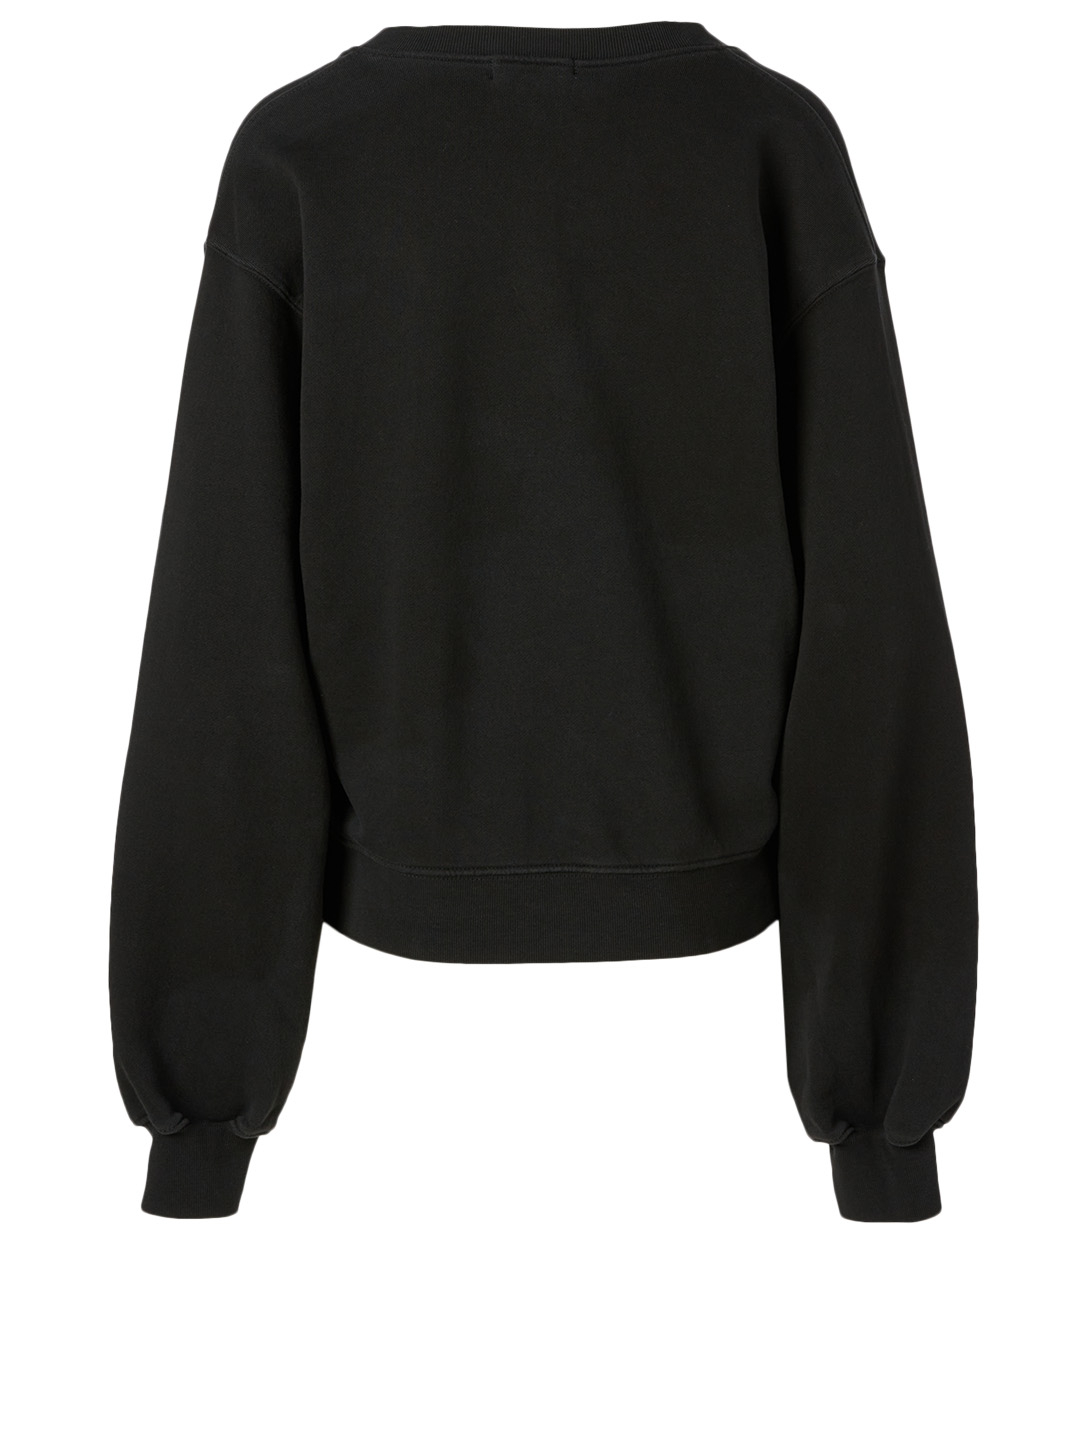 AGOLDE V-Neck Balloon-Sleeve Sweatshirt Women's Black